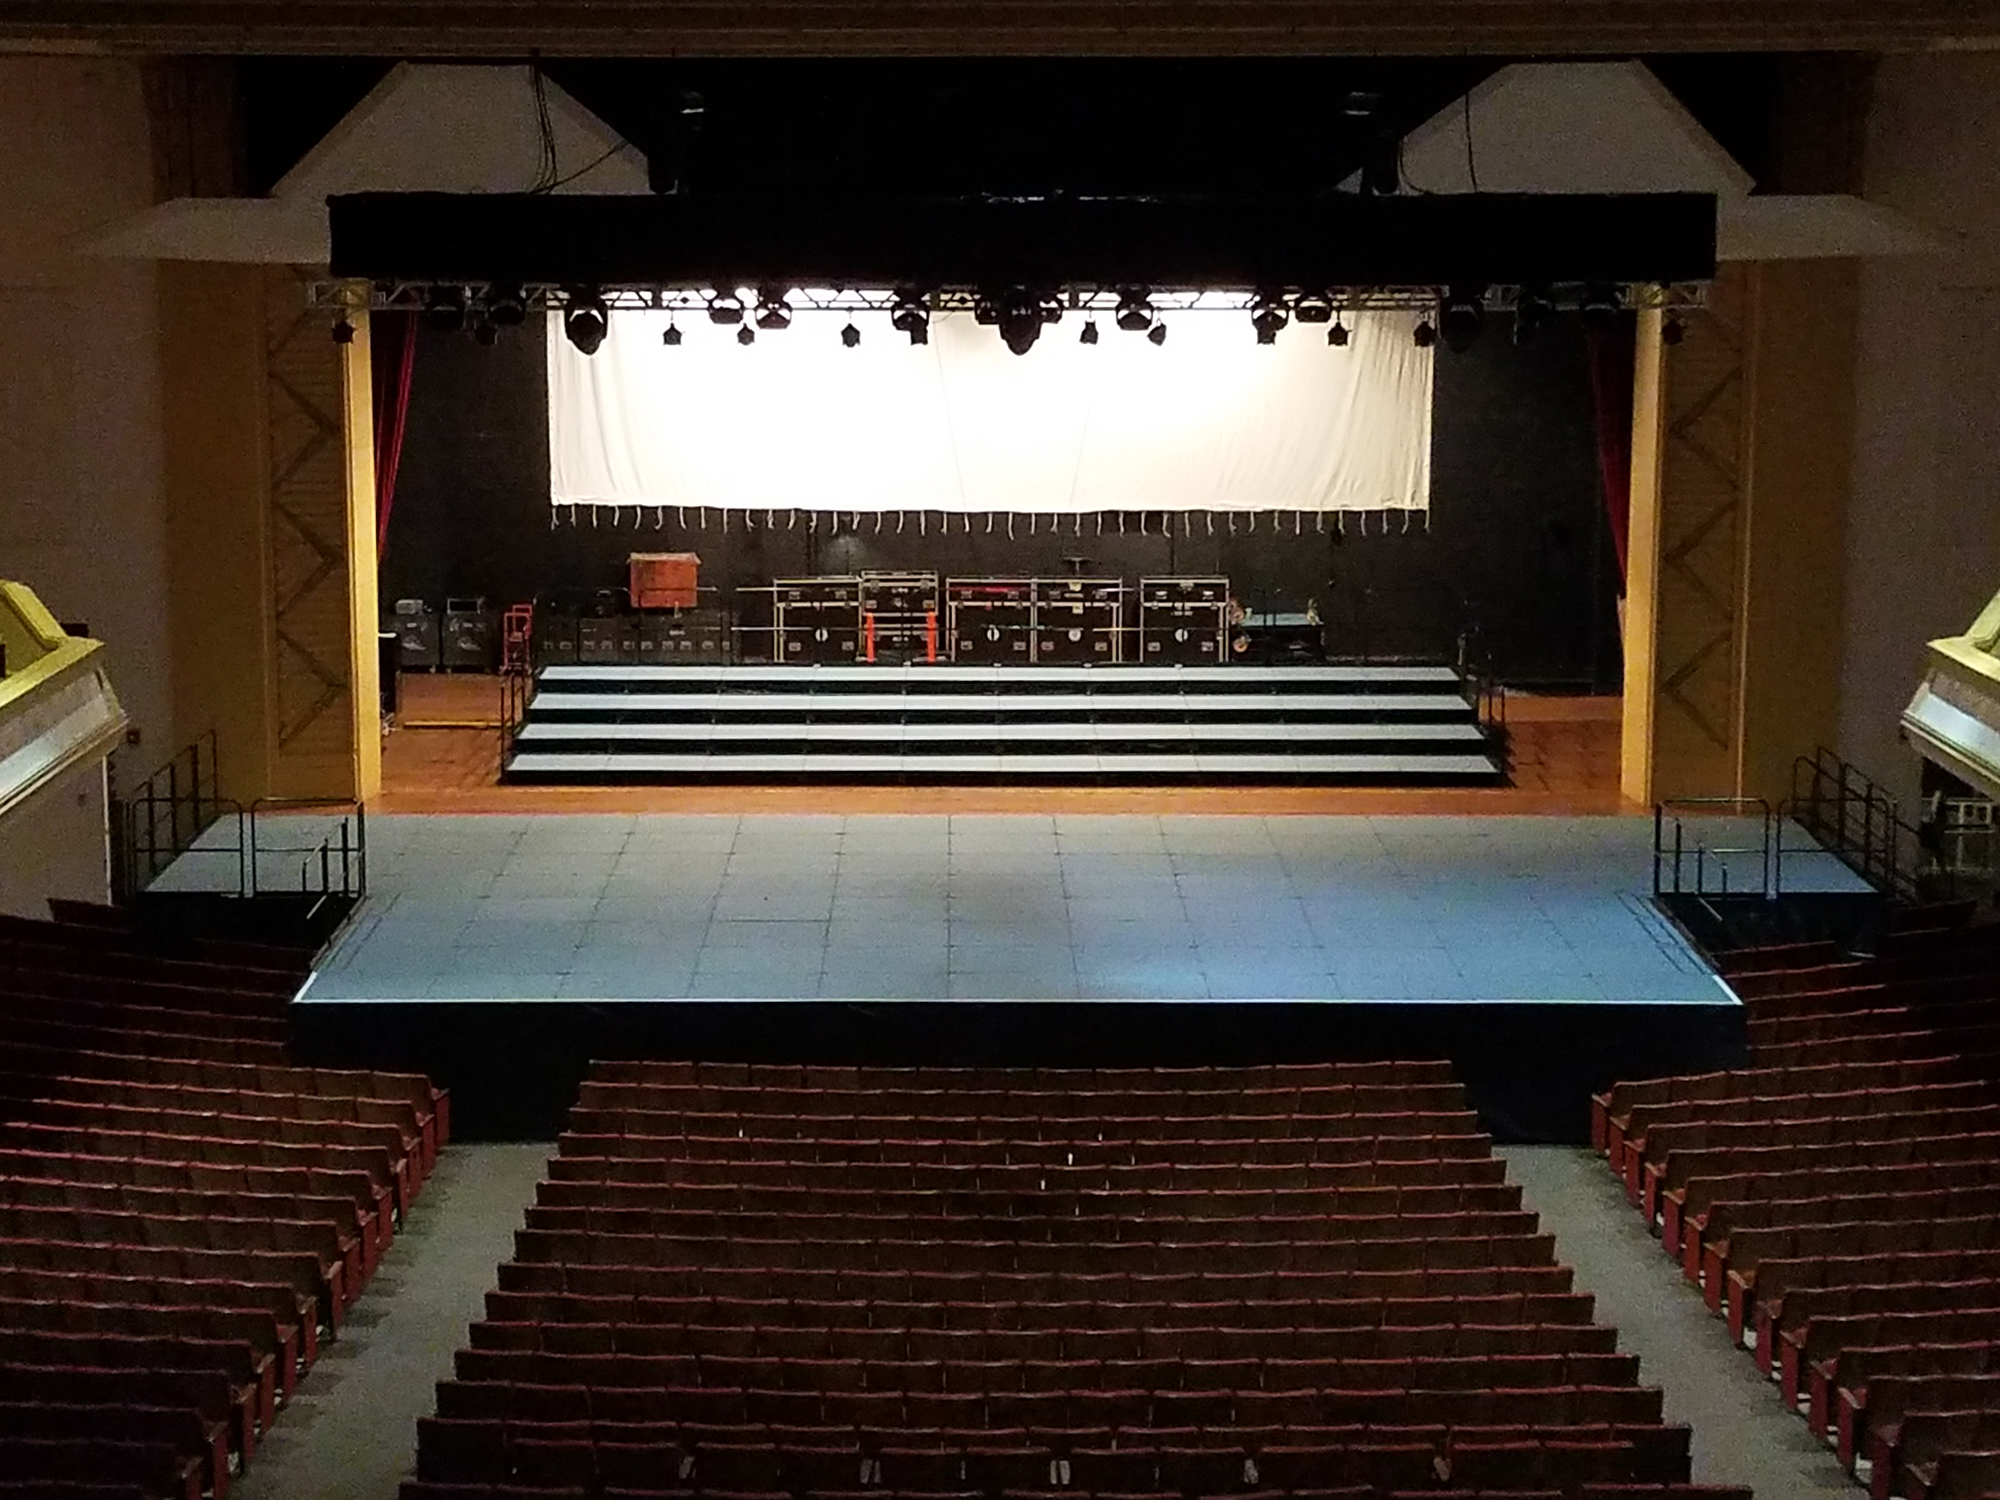 Thomas Wolfe Auditorium Stage empty